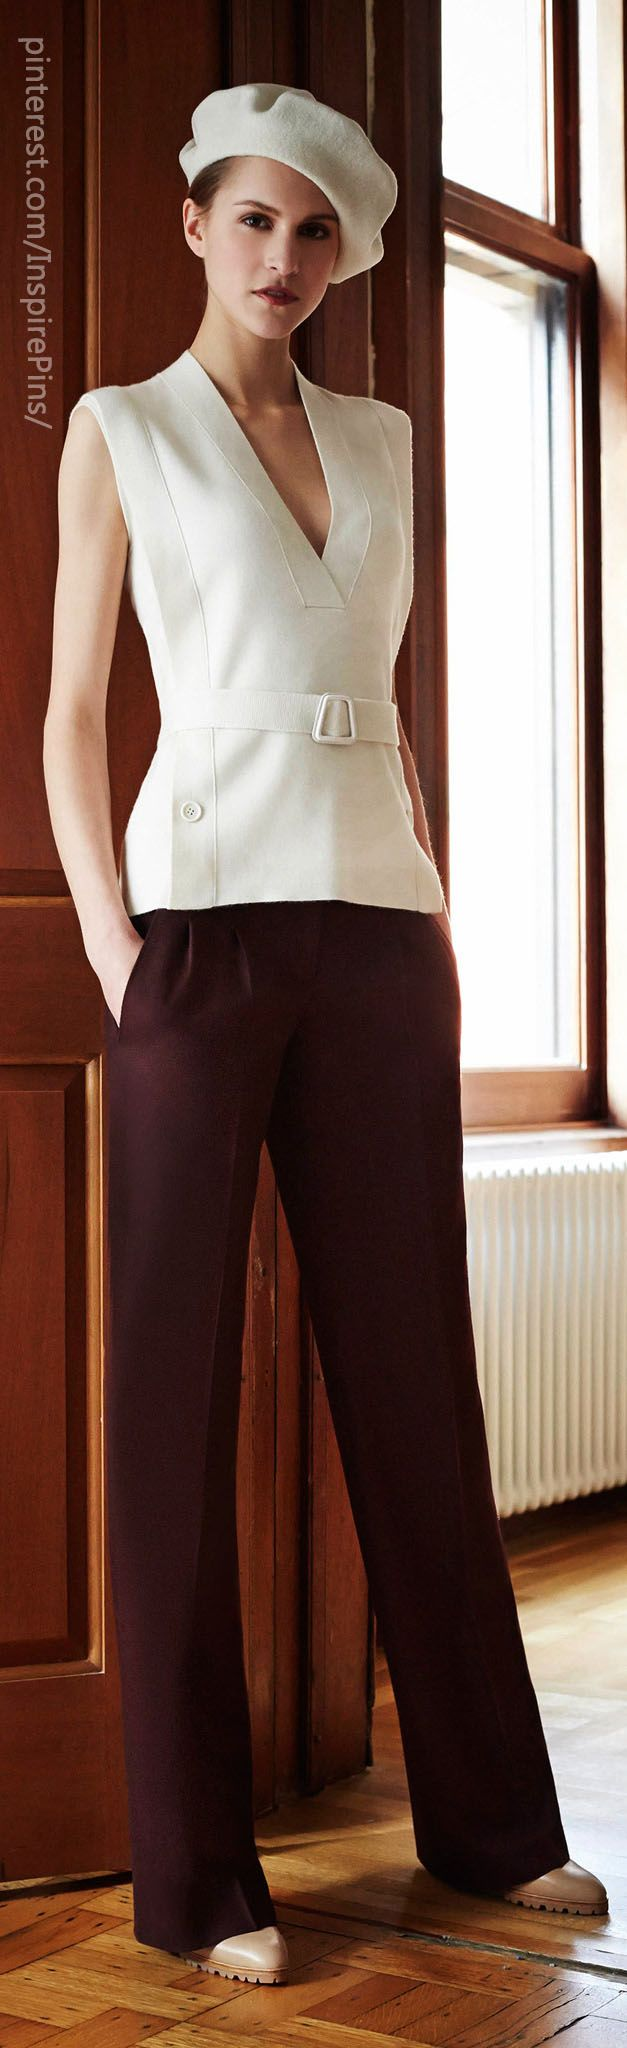 Akris Pre-Fall 2014, business woman, work style, high class, classy model, hat, brown, white